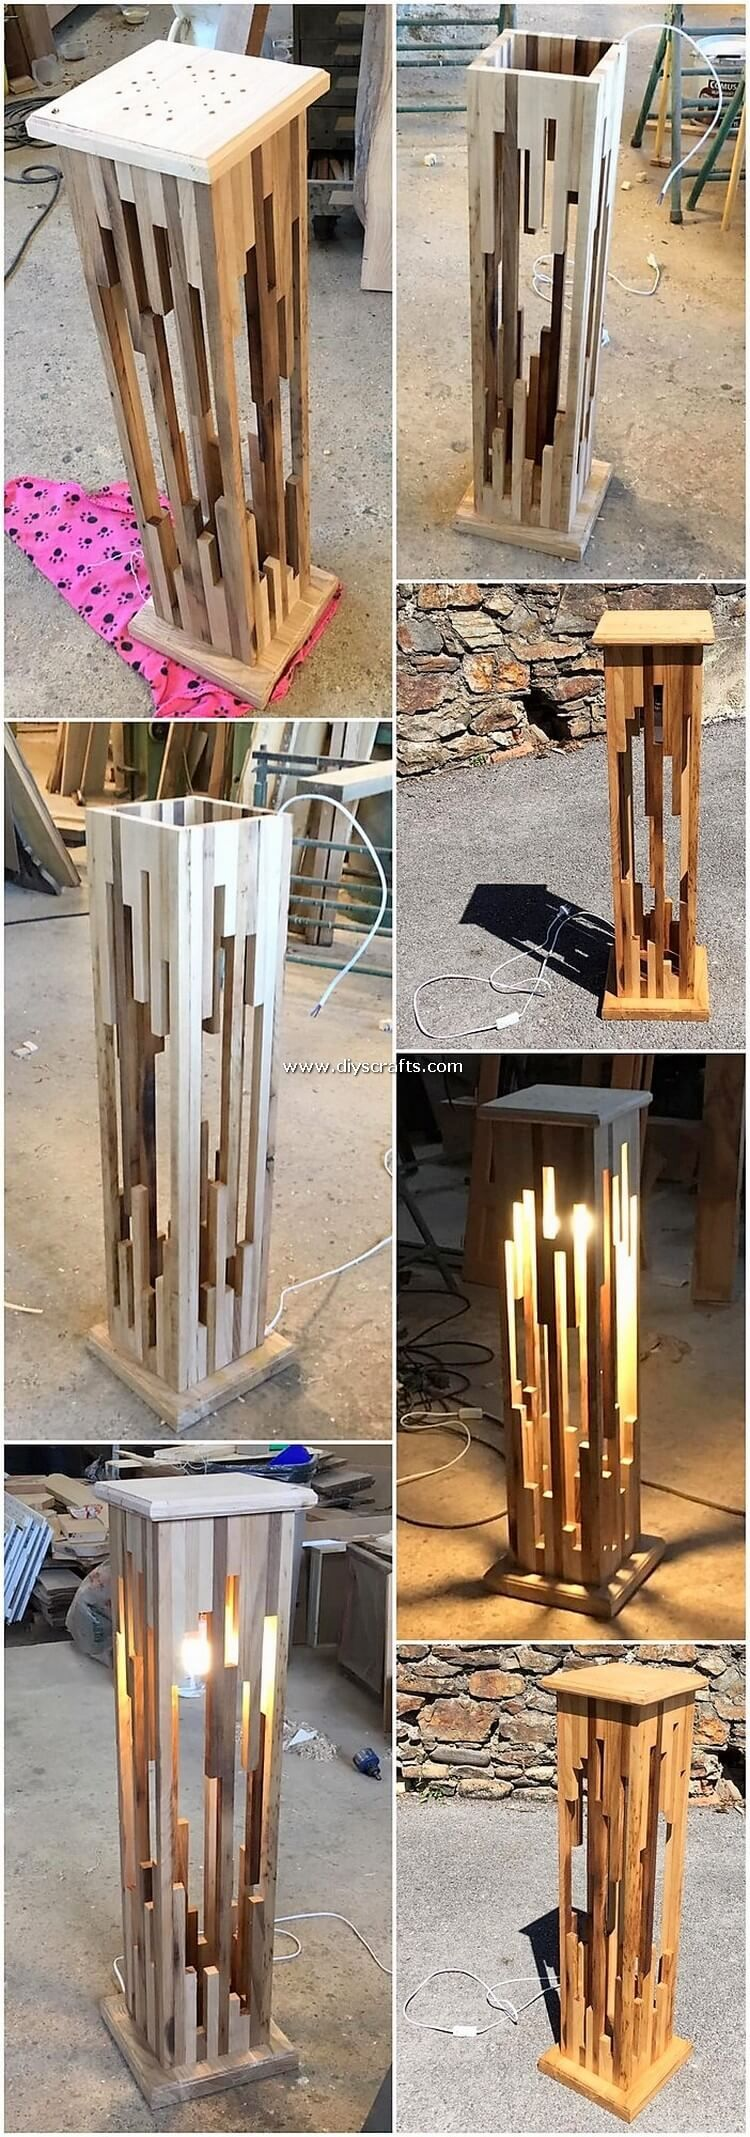 Implausible DIY Creations Made with Wooden Pallets | DIY & Crafts #candles